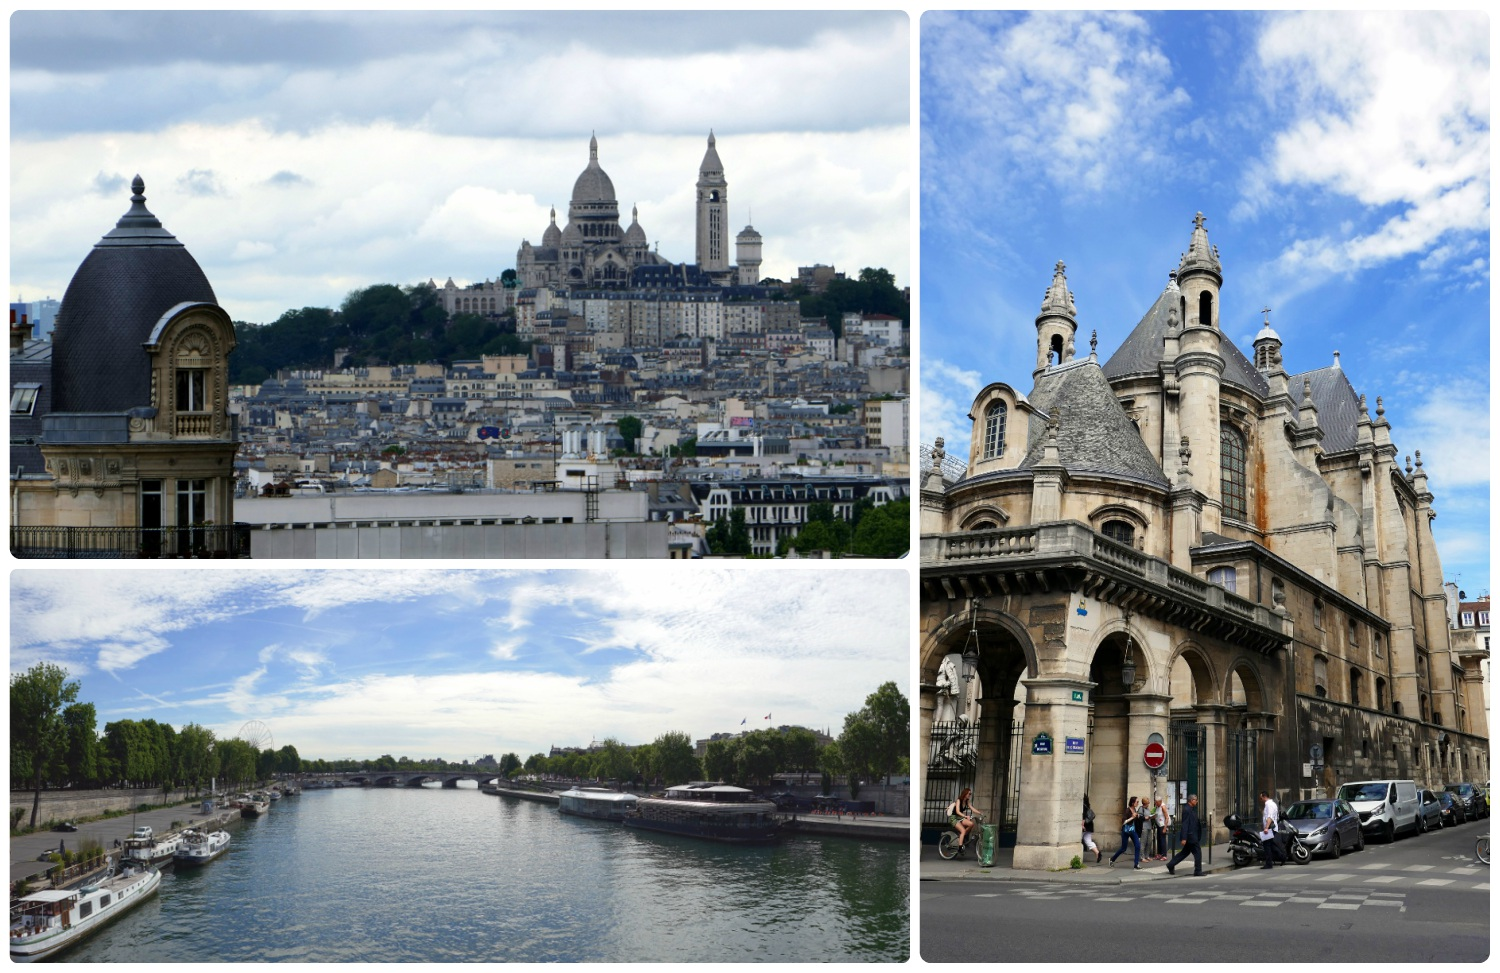 Clockwise (from the top): Paris skyline looking towards Sacré-Cœur (Basilica of the Sacred Heart of Paris), the Protestant Church of the Oratory of the Louvre, the view from view from Pont Alexandre III.